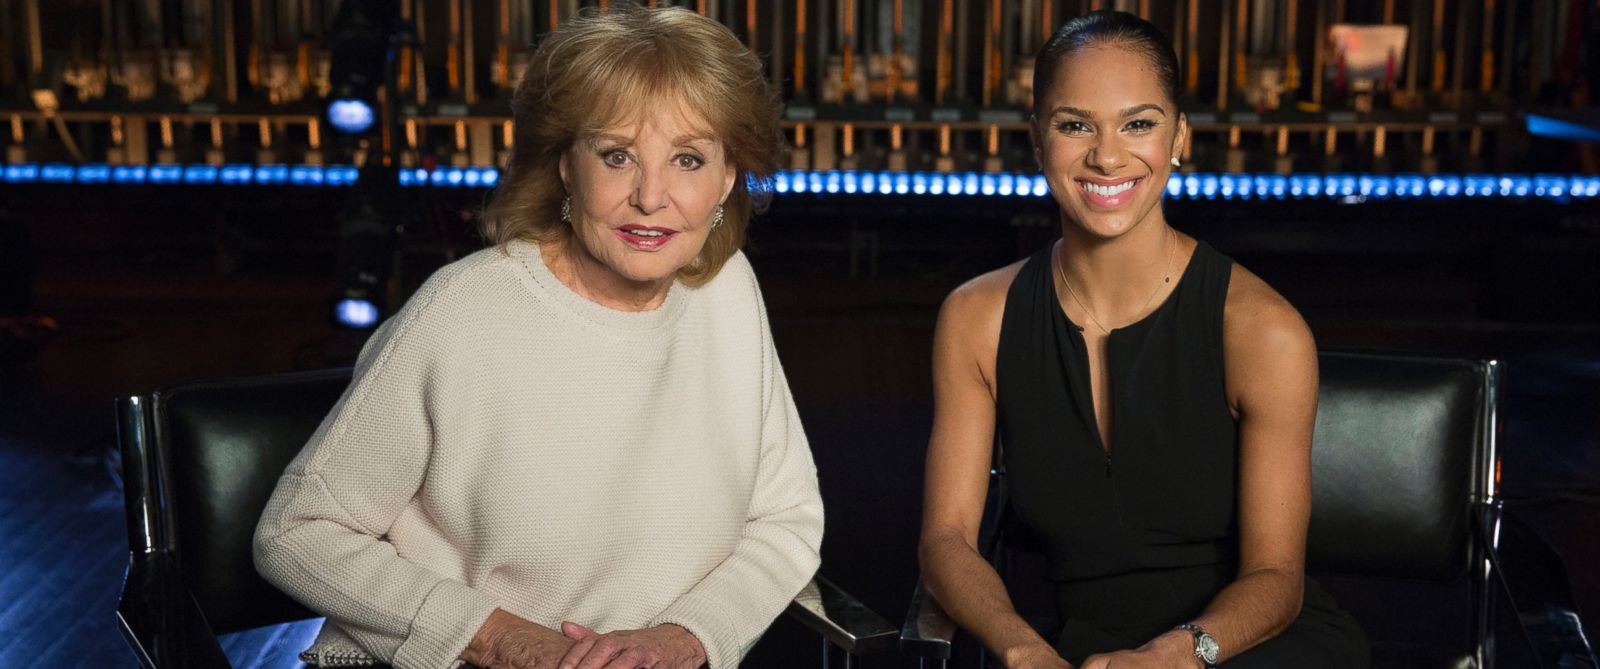 "Barbara Walters interviews Misty Copeland for the ABC News special, ""Barbara Walters Presents: The 10 Most Fascinating People of 2015."""